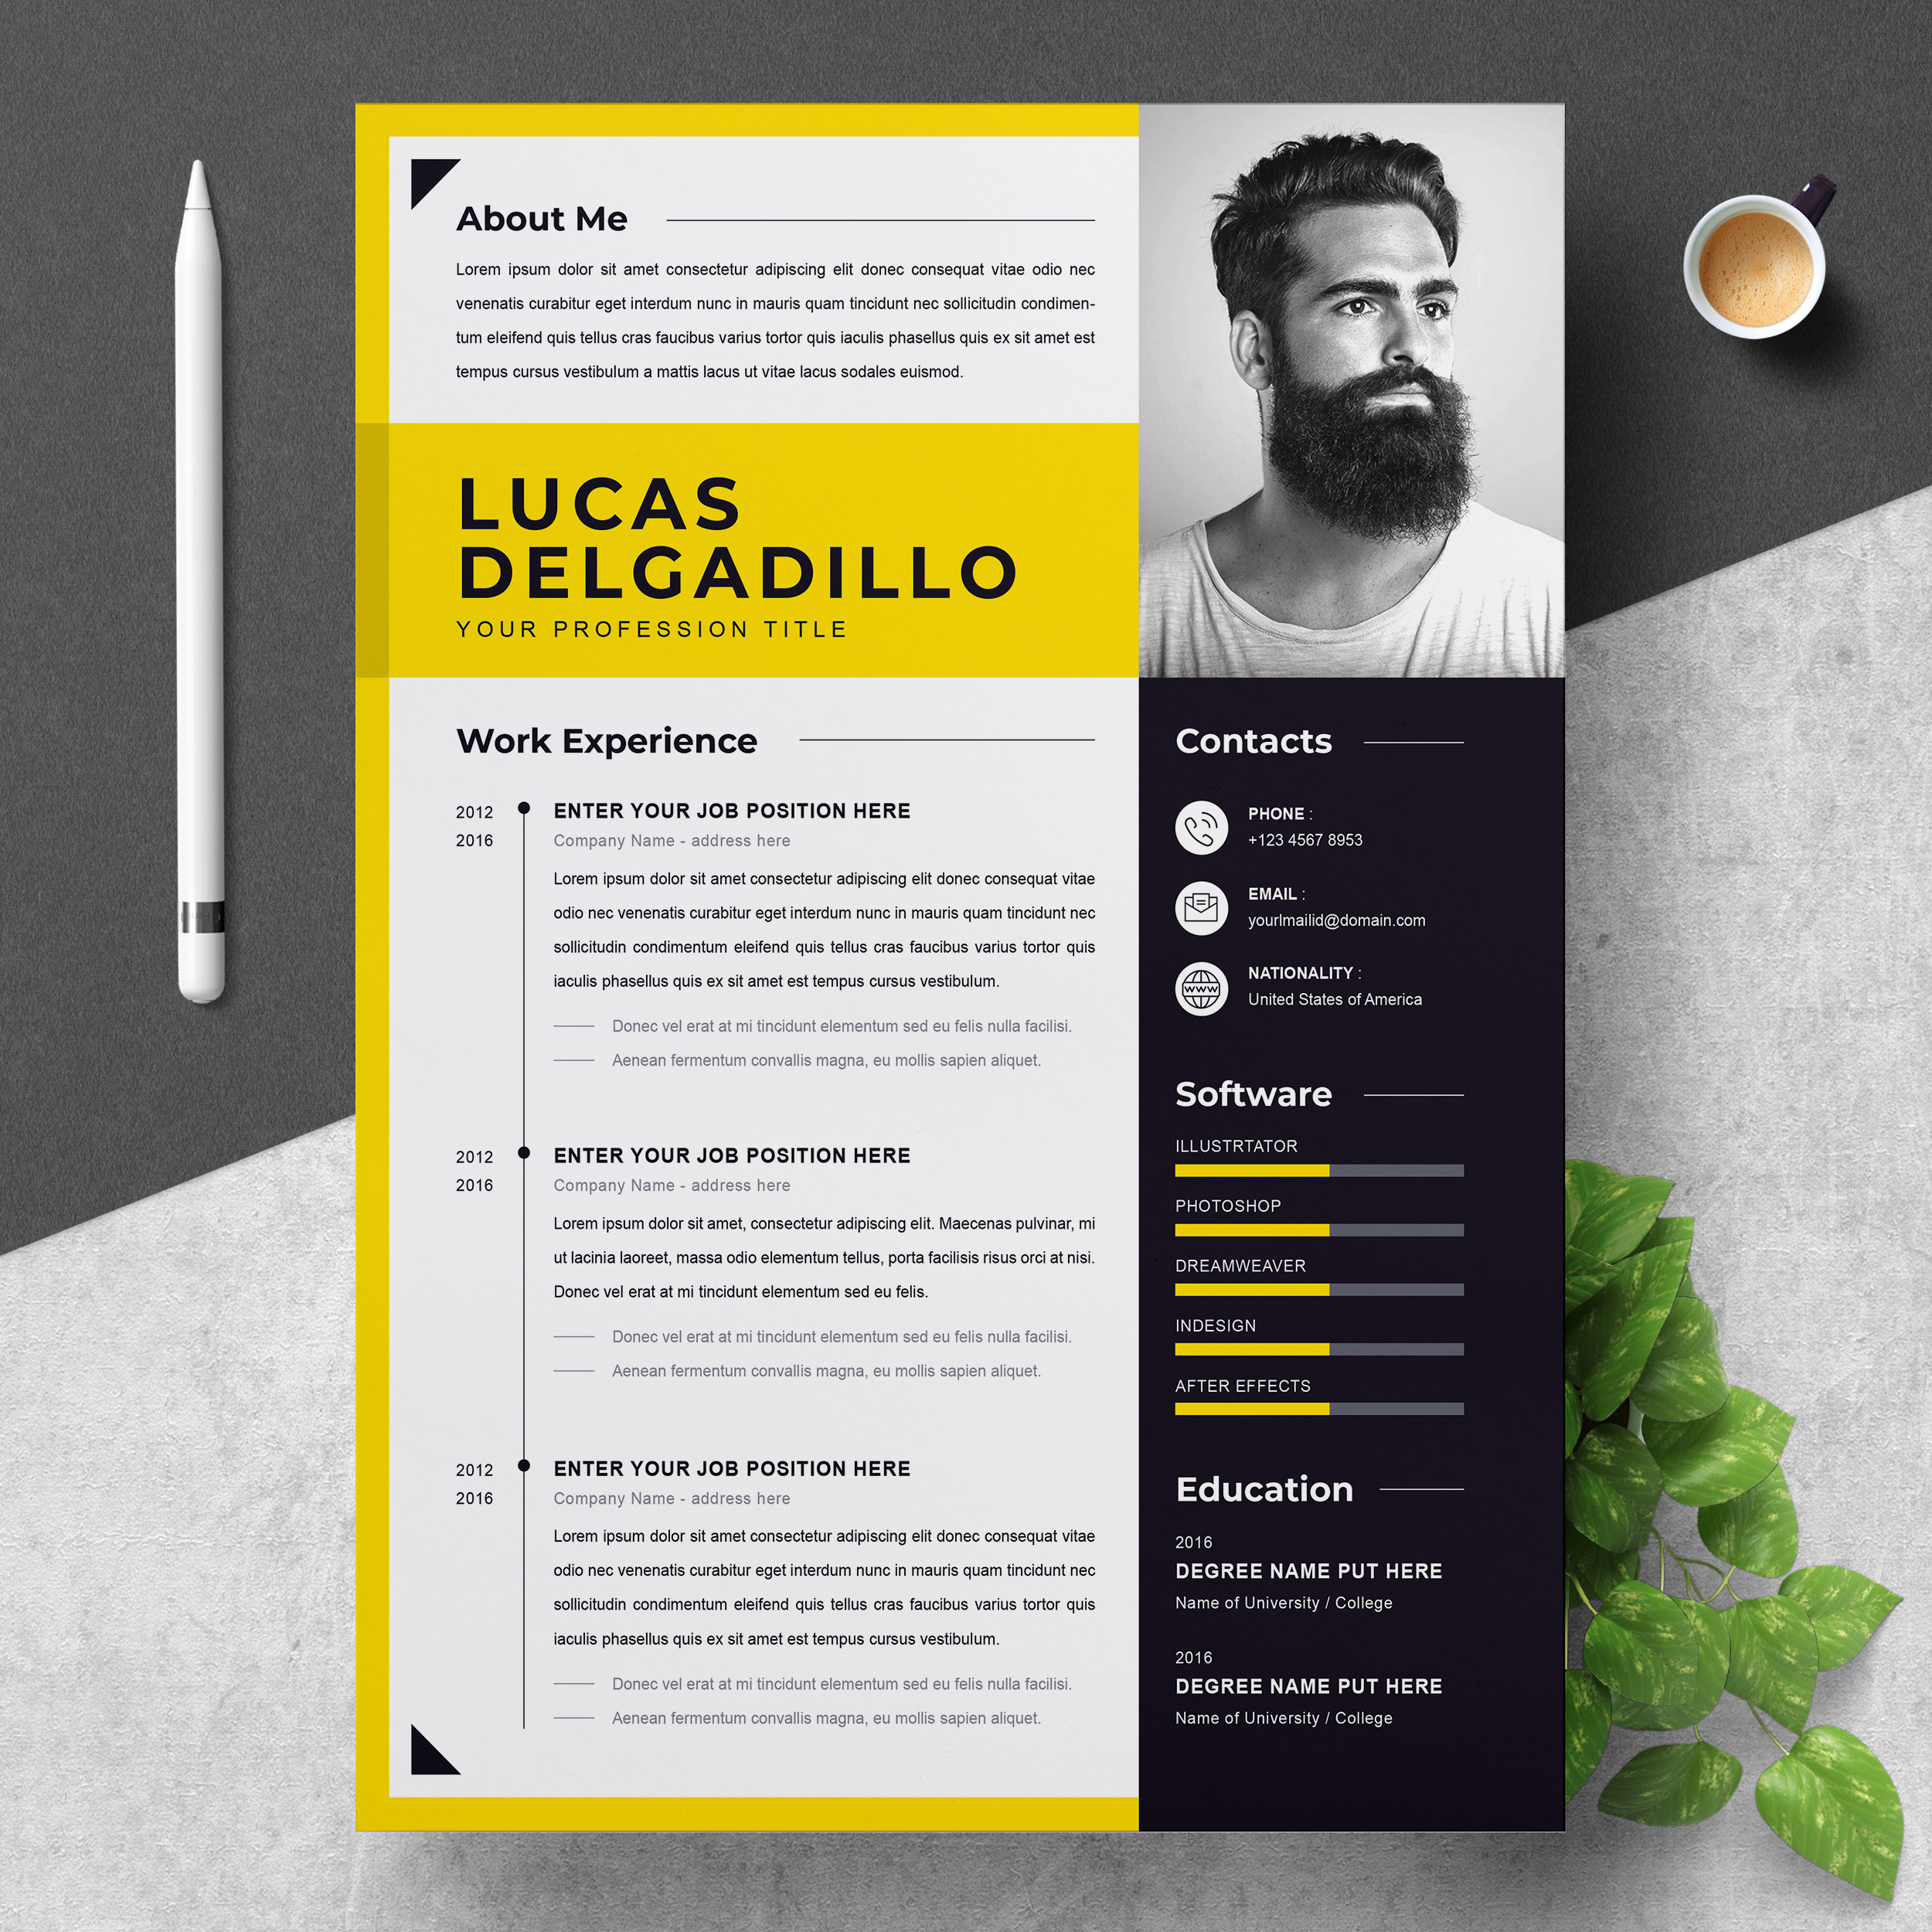 Best Minimal Resume Template 2021